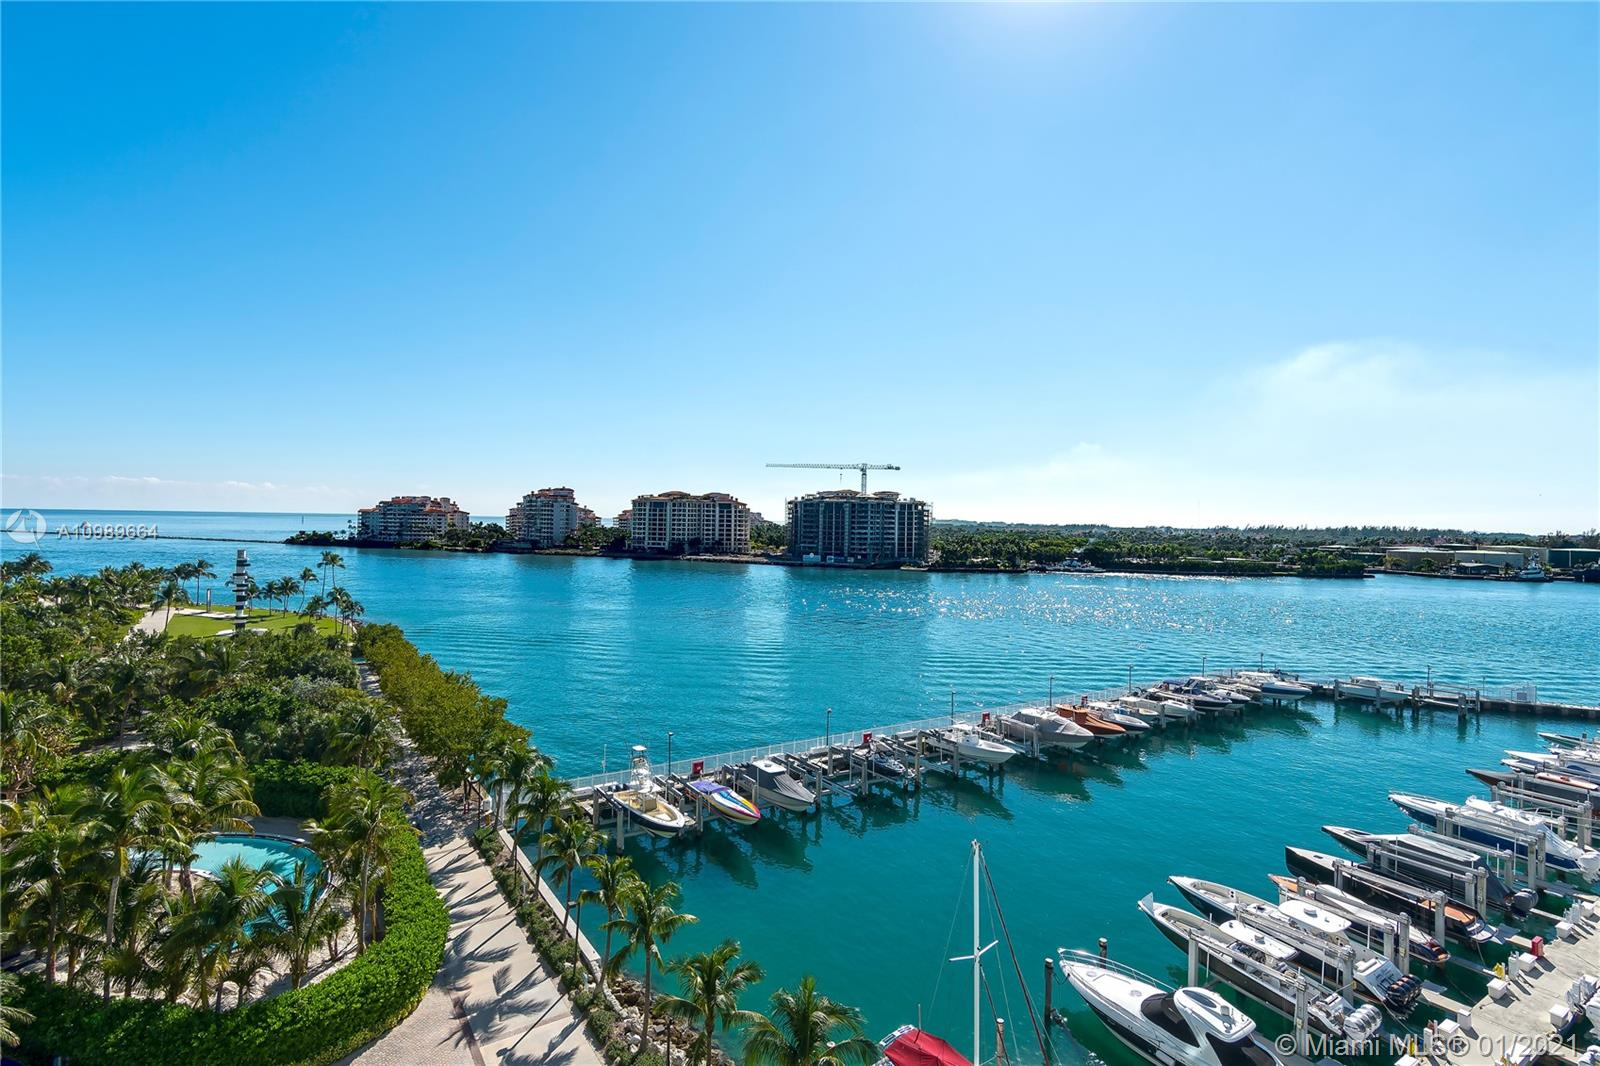 Watch the cruise ships pass by and enjoy magnificent sunrise & sunset views from the oversize terraces of this desirable 02 line at the Murano Portofino. Contemporary-chic residence boasts a spacious open floor plan with 3 bedrooms and 3 ensuite bathrooms, marble floors, private elevator foyer and a gourmet kitchen with Subzero and Miele appliances. Floor-to-ceiling impact windows allow plenty of natural light and panoramic views of Ocean, Fisher Island and Miami Skyline from every room. Murano is perfectly located next to the Marina ensuring boat aficionados and beach lovers the ultimate lifestyle. Five star amenities include 24 hour valet and security, concierge services, 2 tennis courts, 2 pools, state of the art Gym and Spa, private beach club and much more